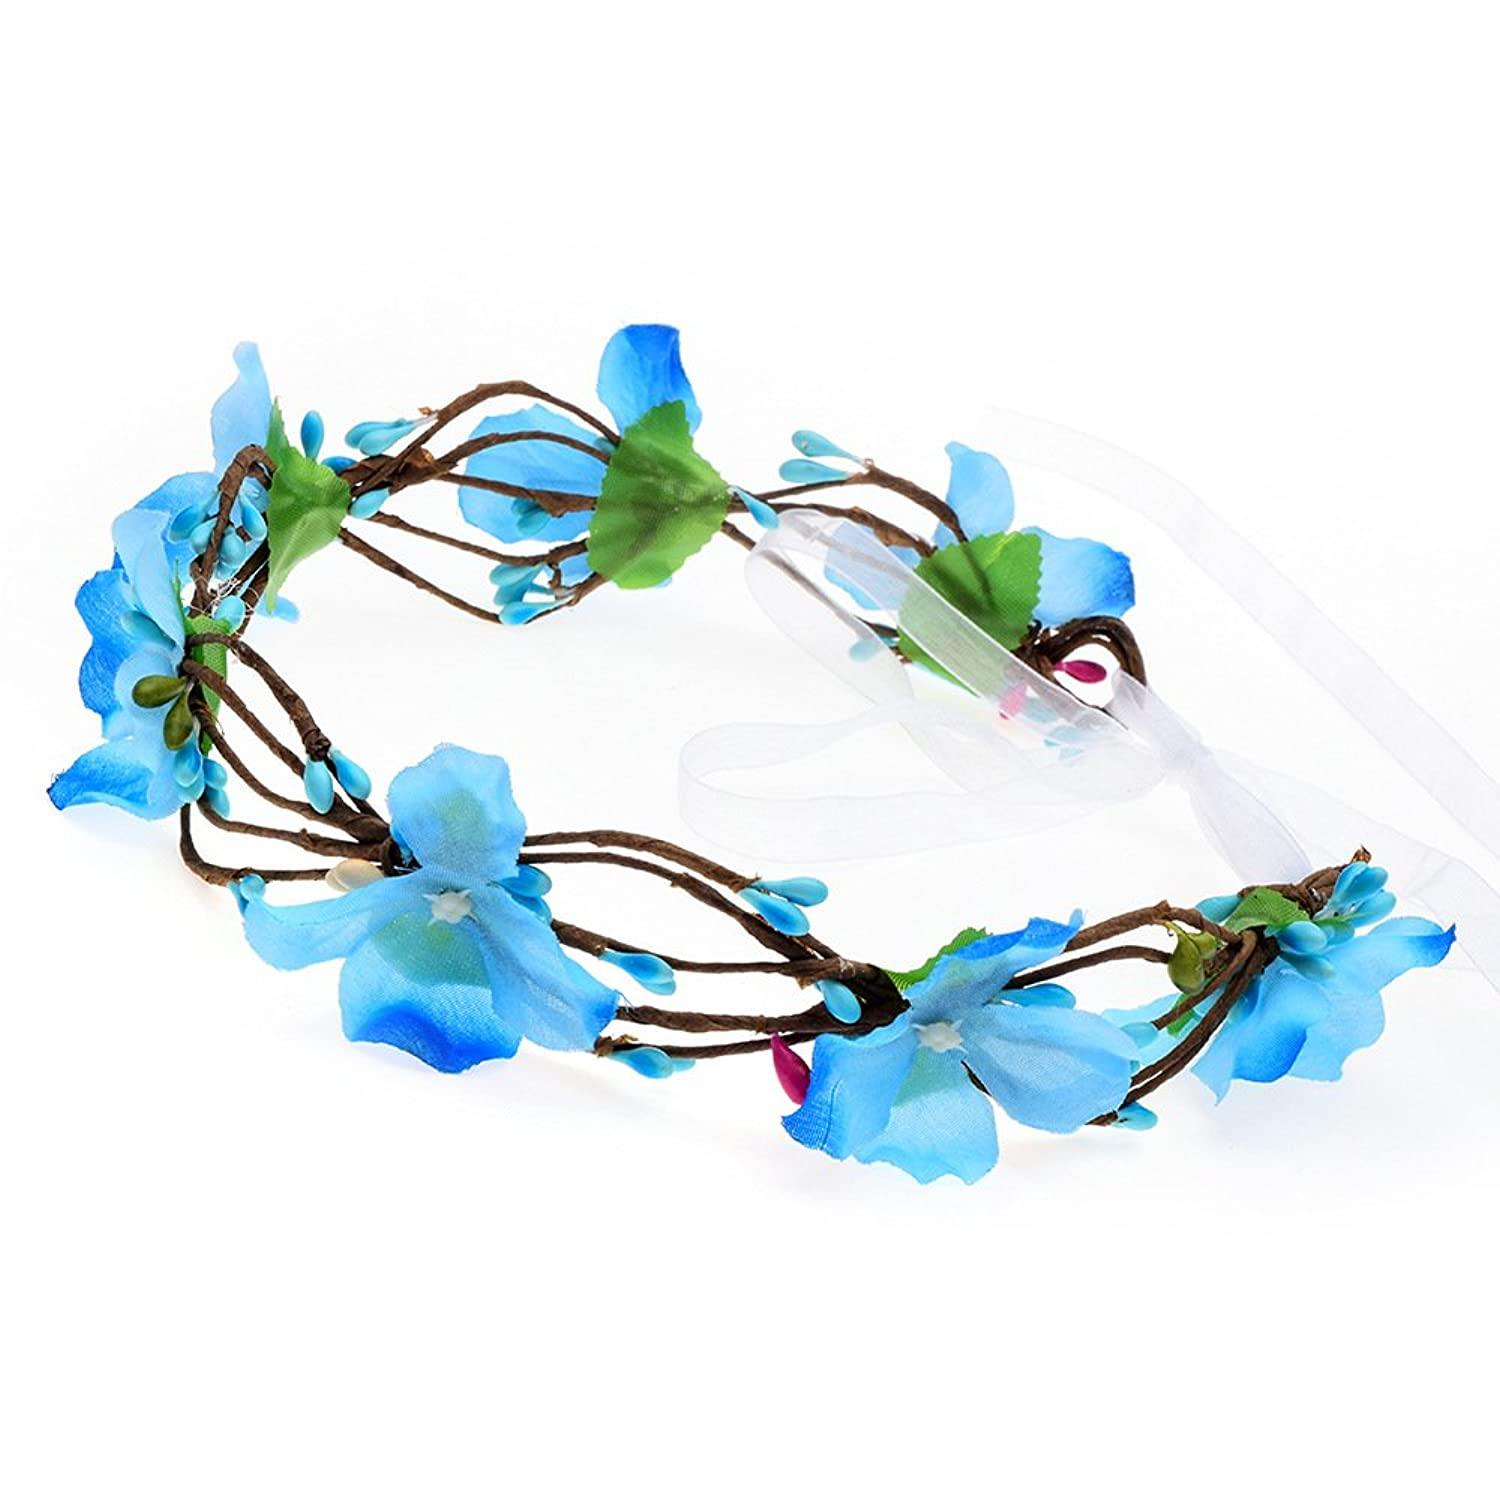 Floral Fall Fairy Woodland Blue Hair Wreath Hippie Headbands Boho Bridal Headpiece F-65